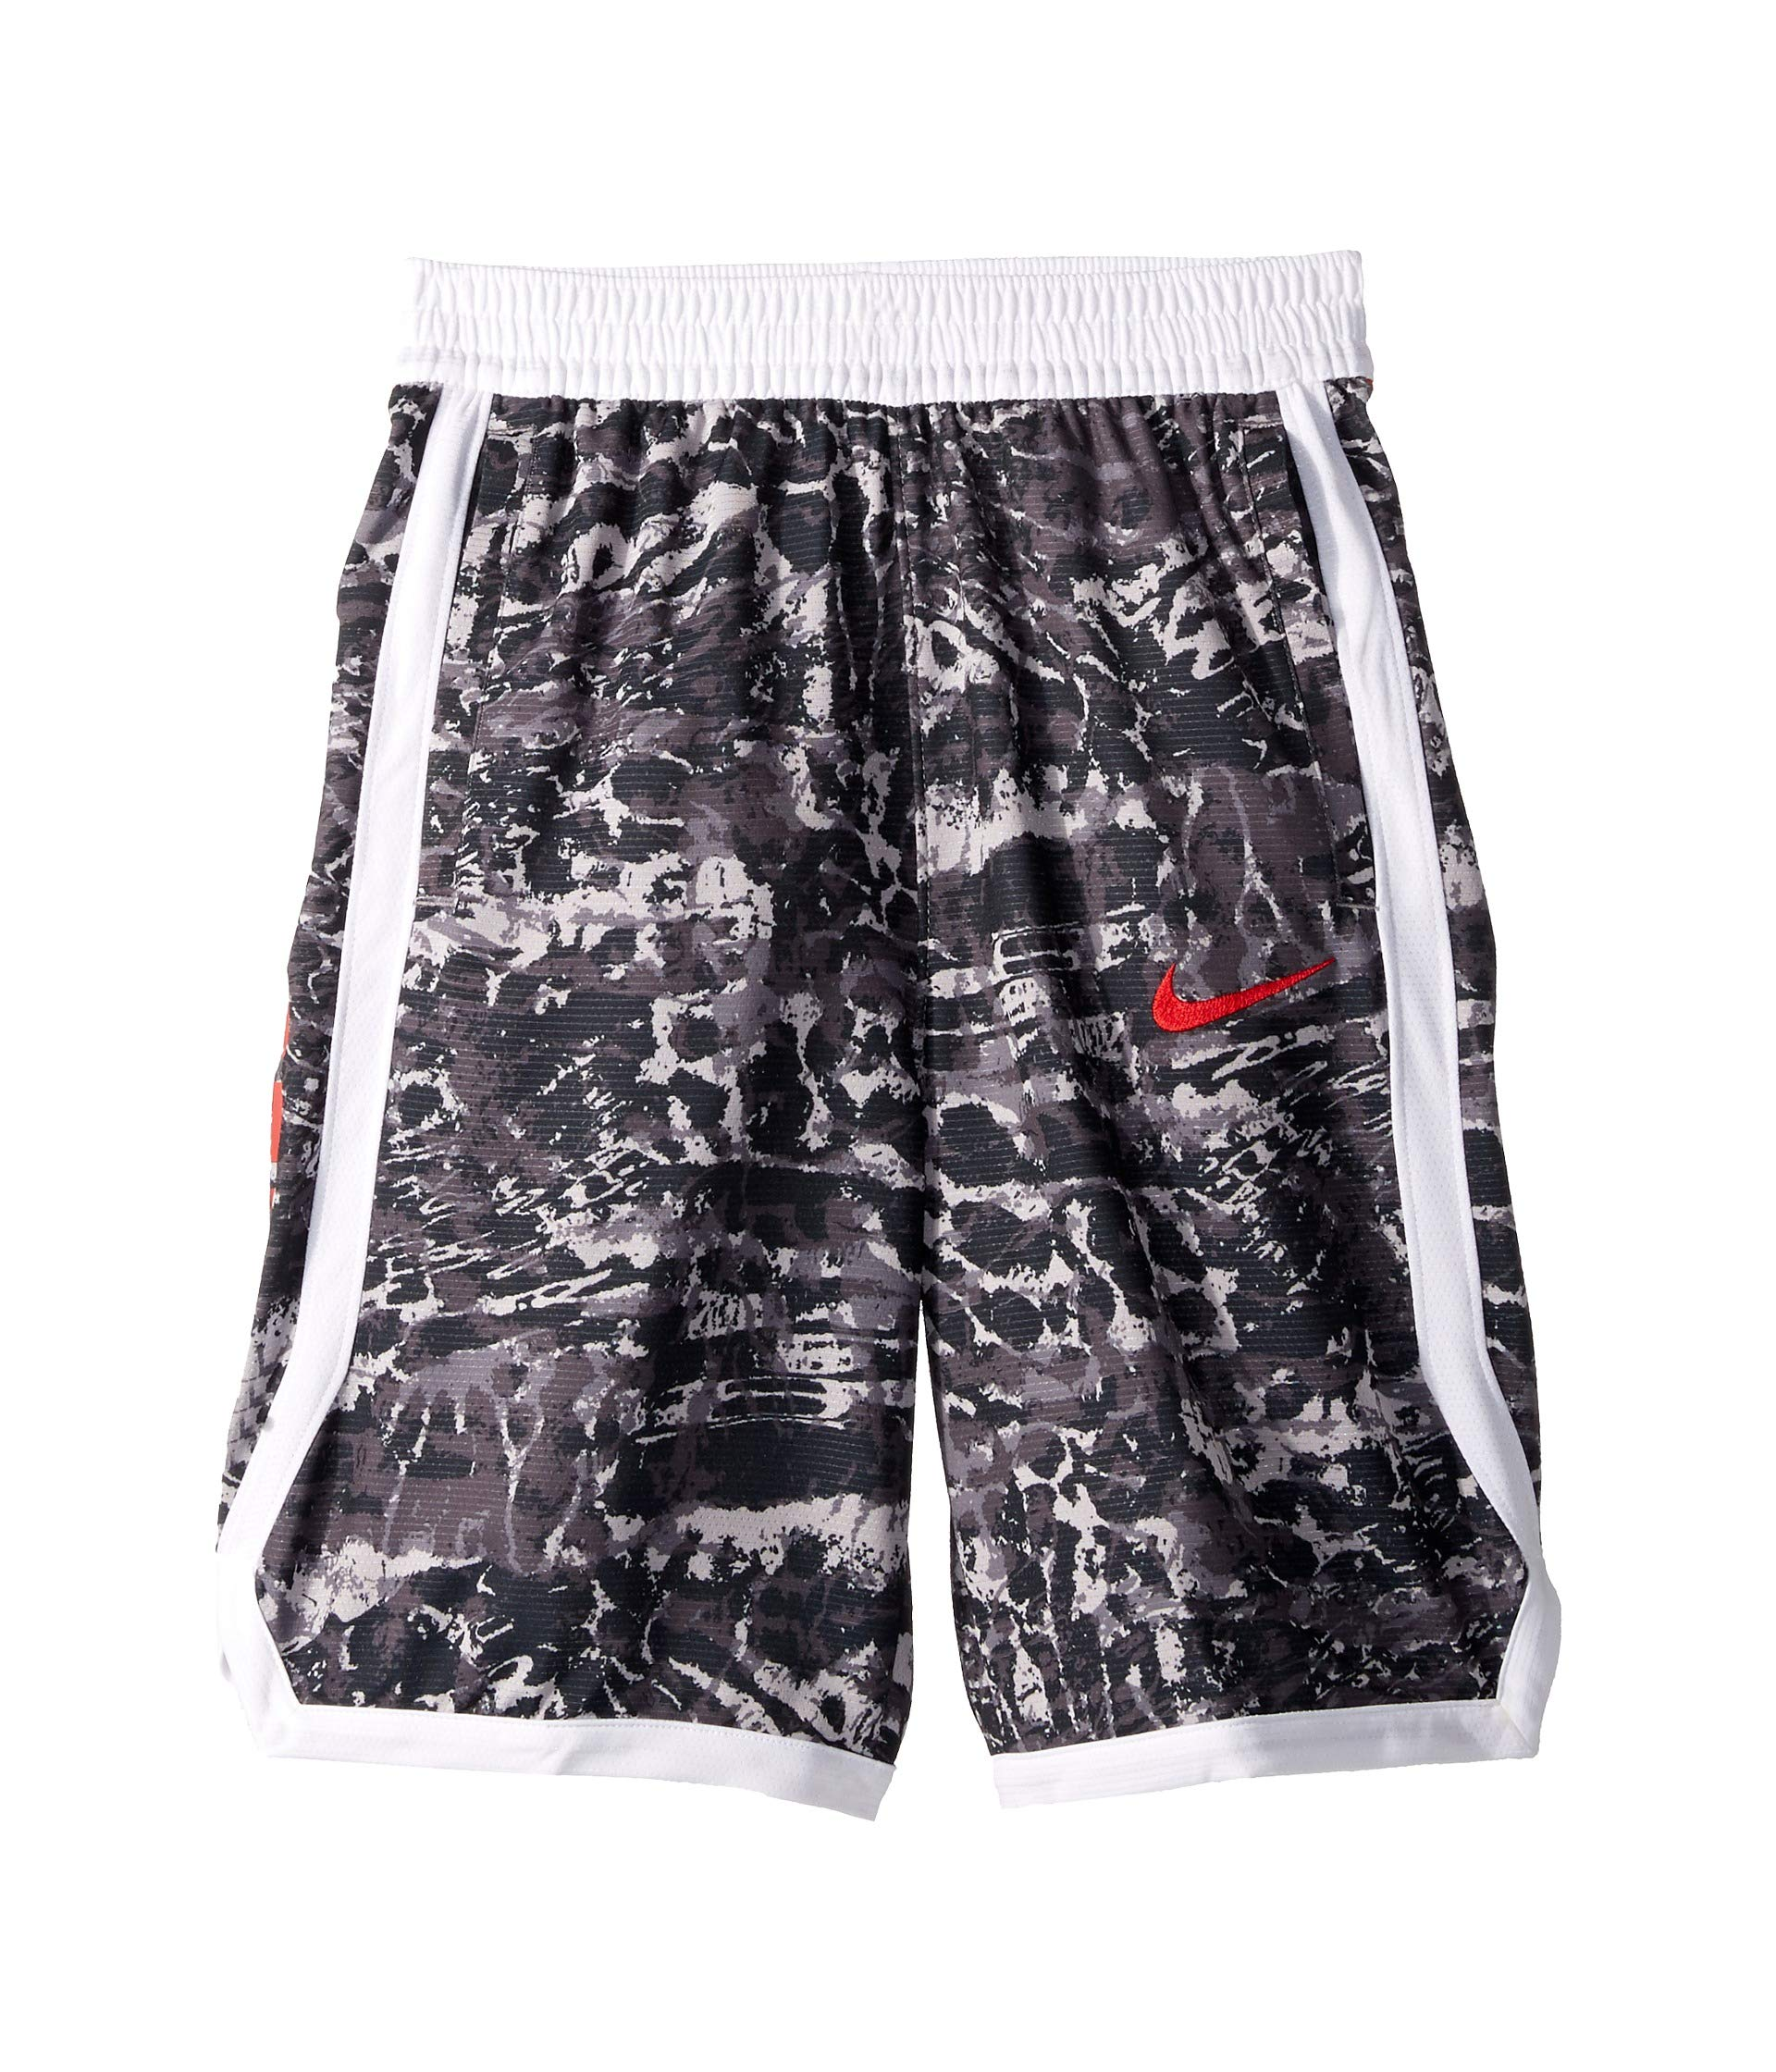 Nike Boy's Dri-FIT Elite Printed Basketball Shorts (Gunsmoke/White, X-Large) by Nike